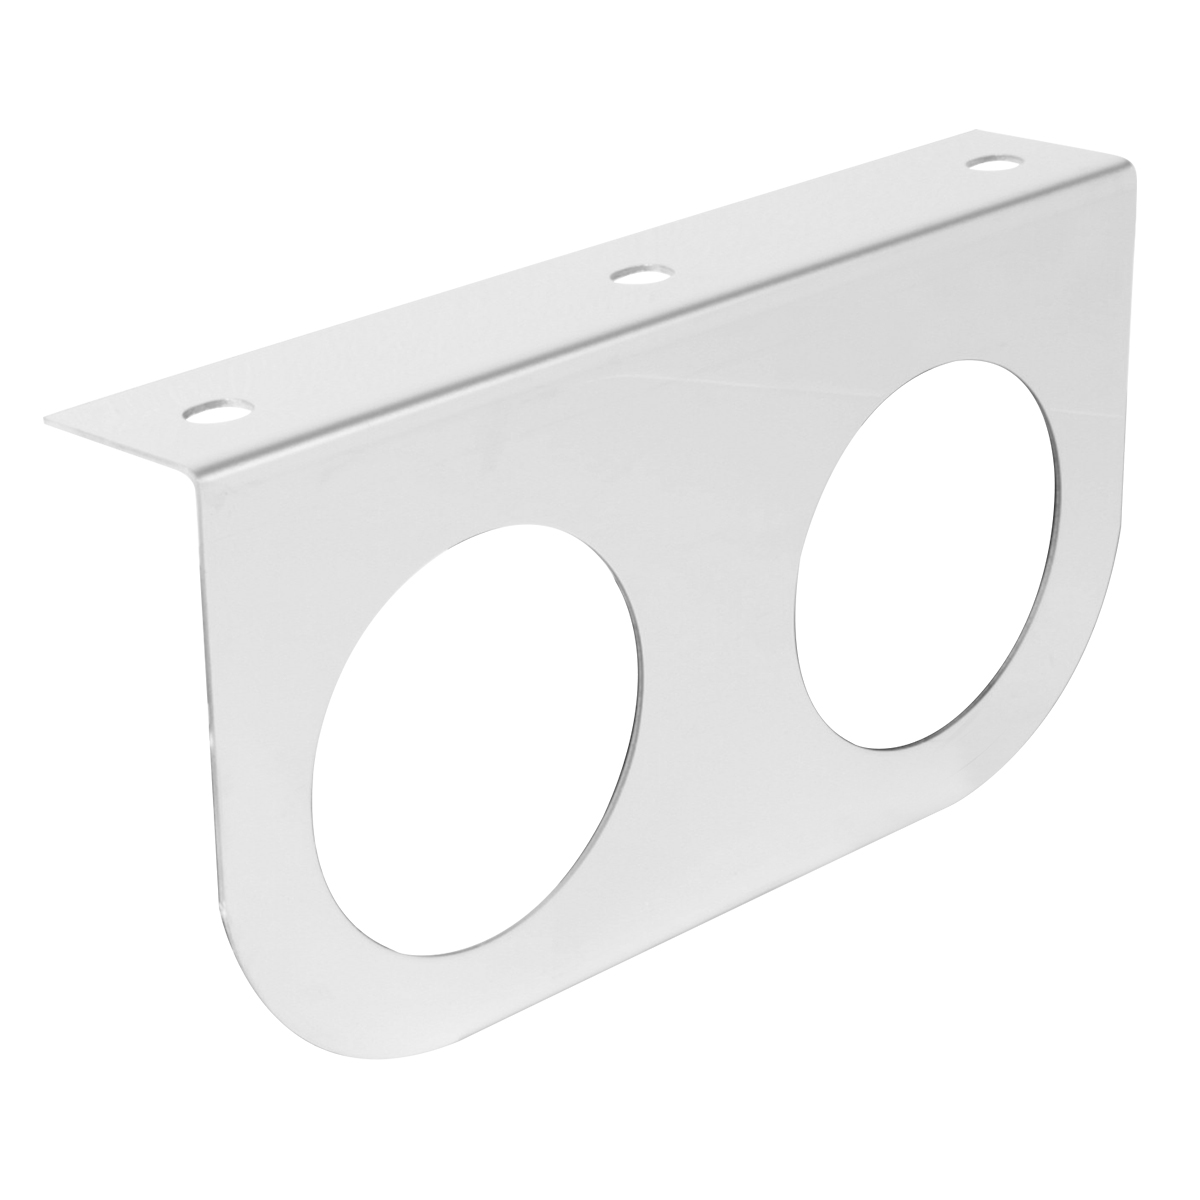 Chrome Plated STeel Bracket Only